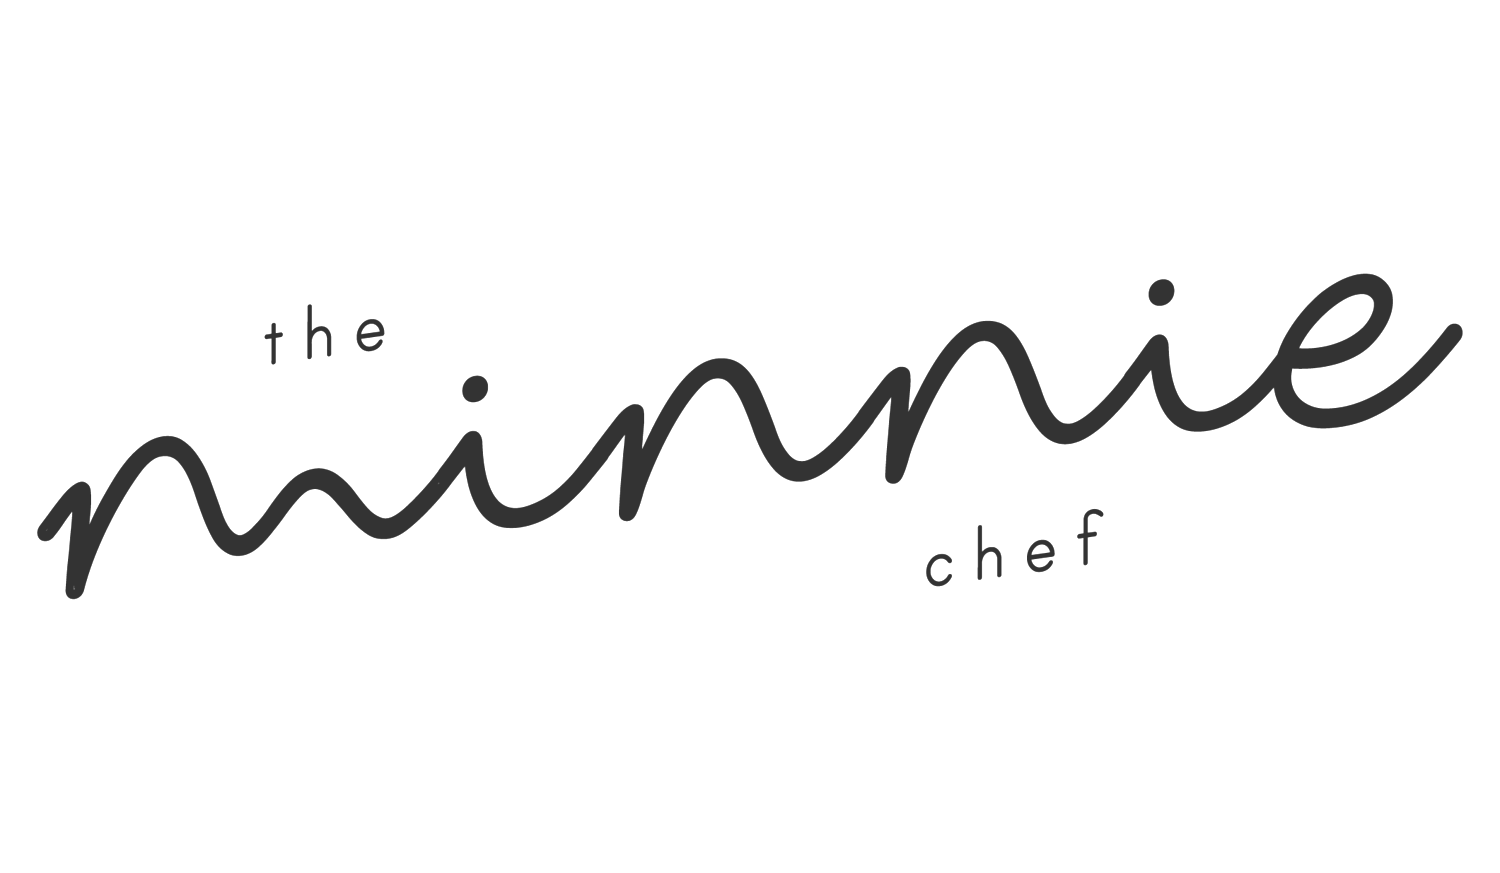 The Minnie Chef